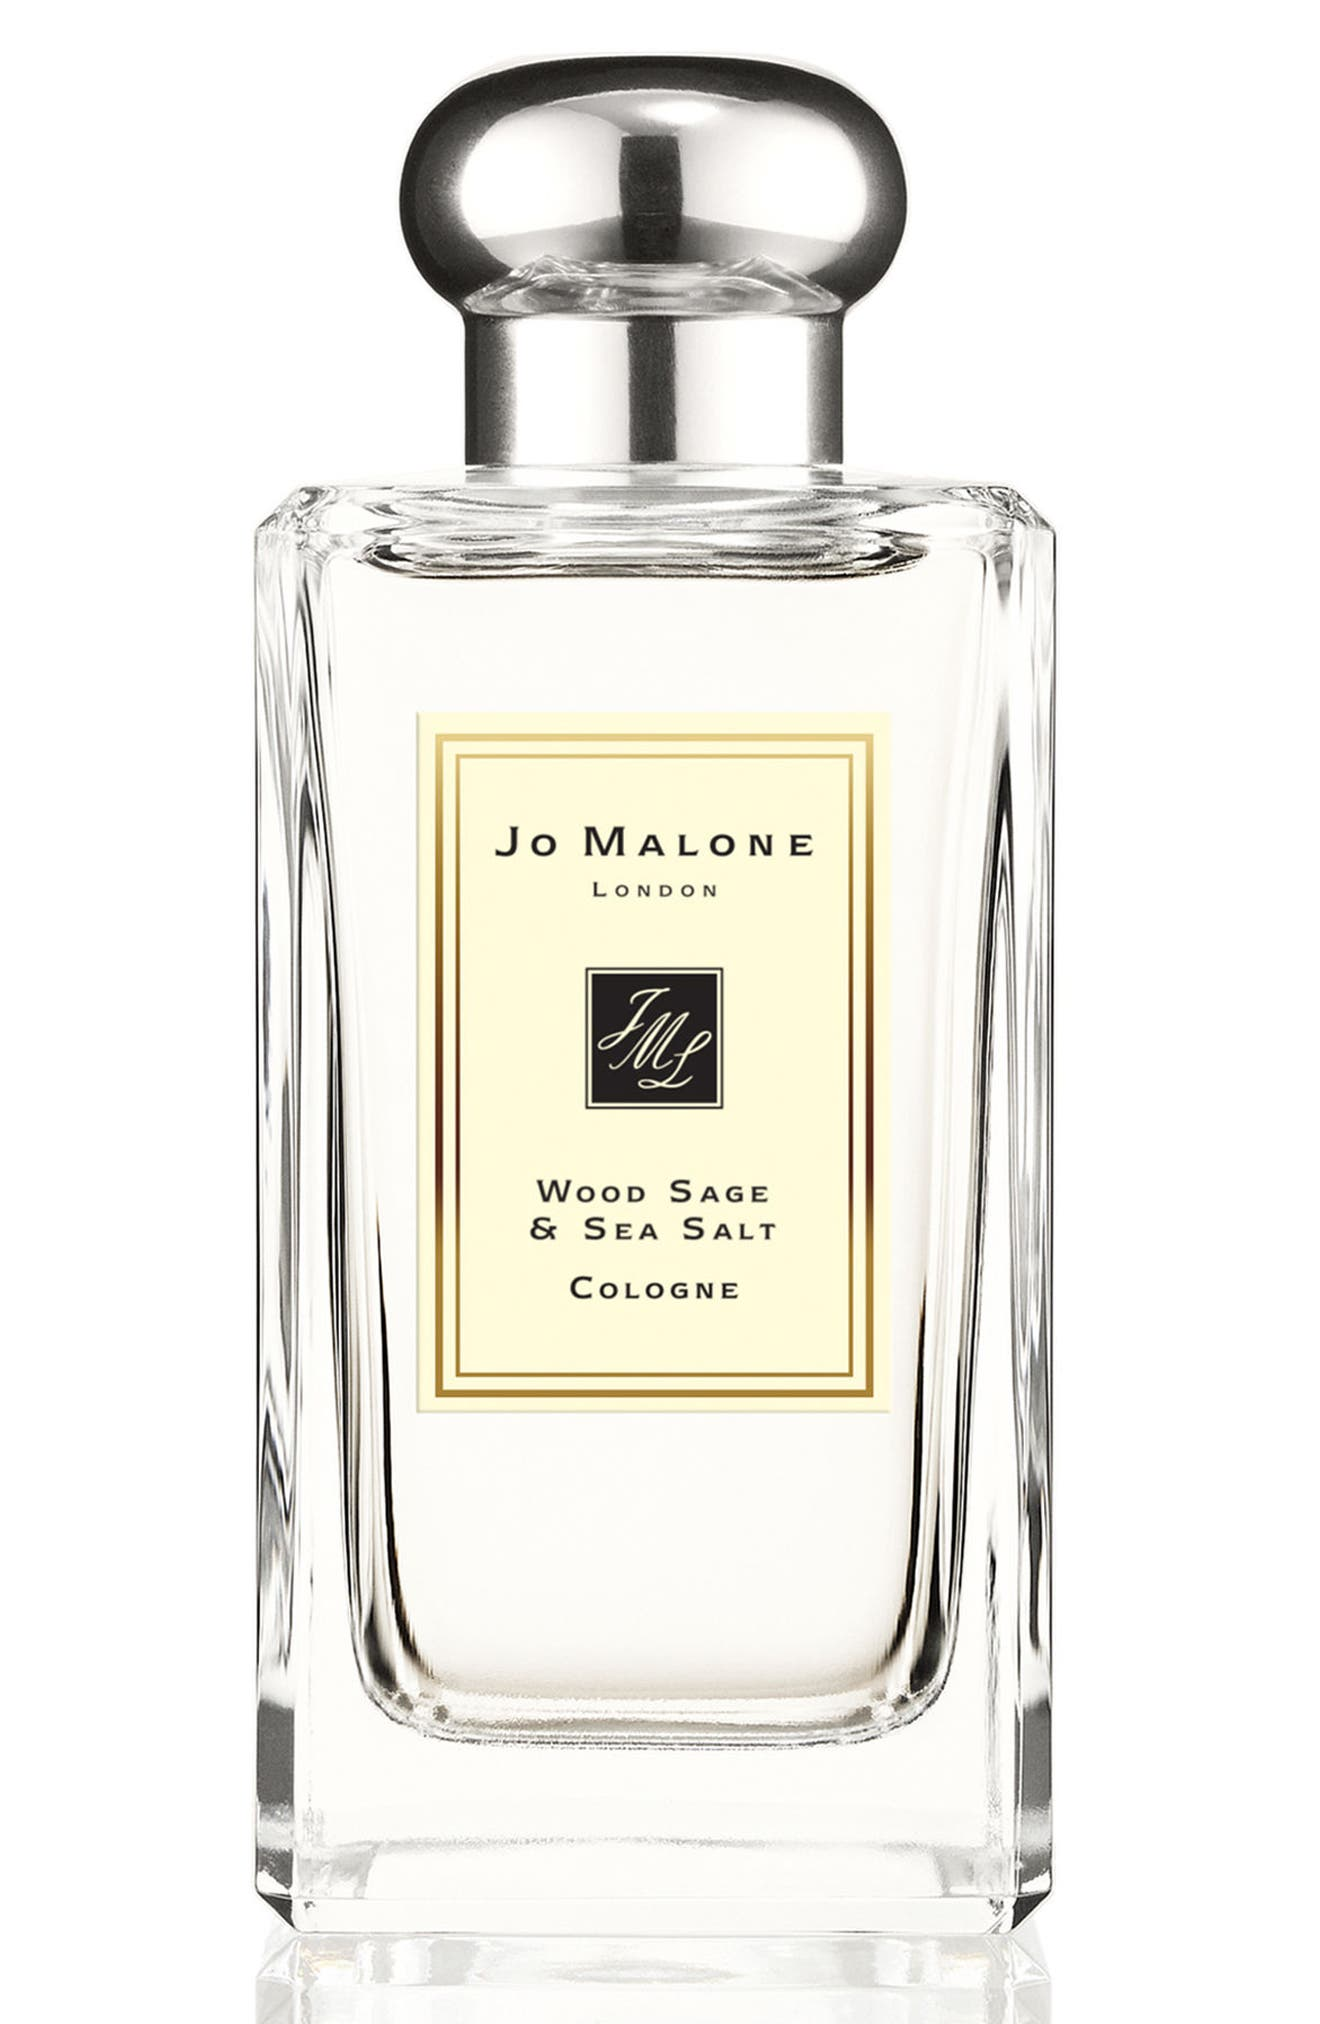 Wood Sage & Sea Salt Cologne by Jo Malone London™